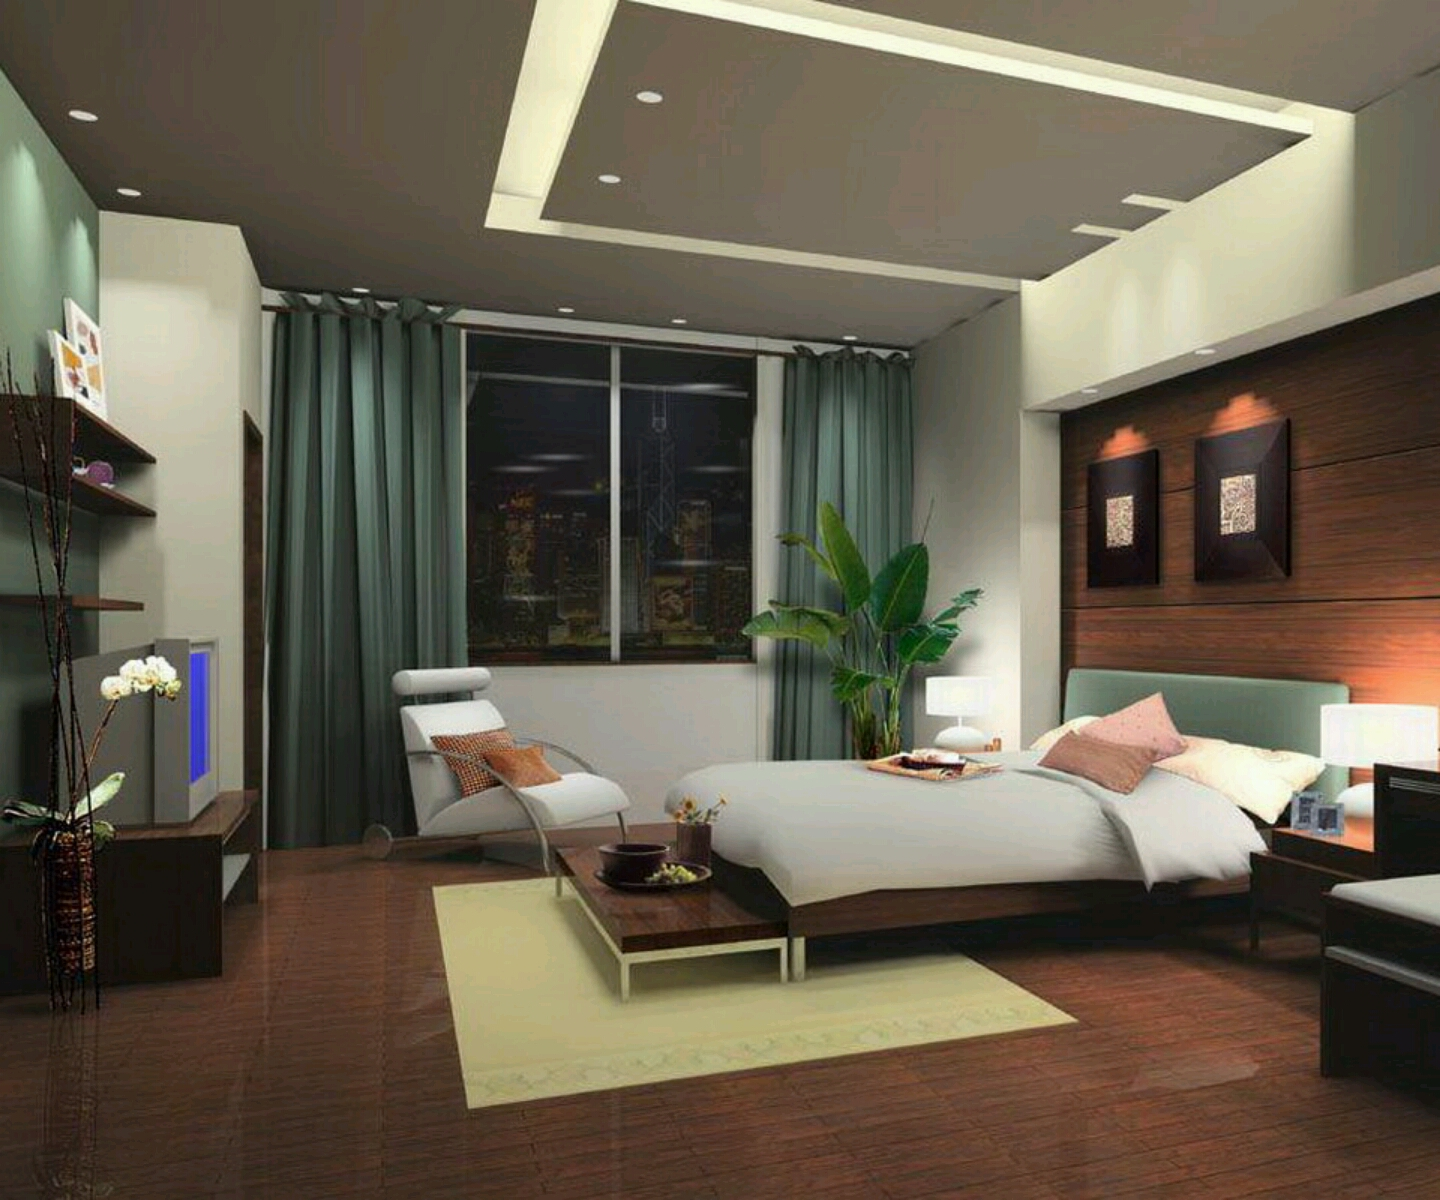 Modern bedrooms designs best ideas.